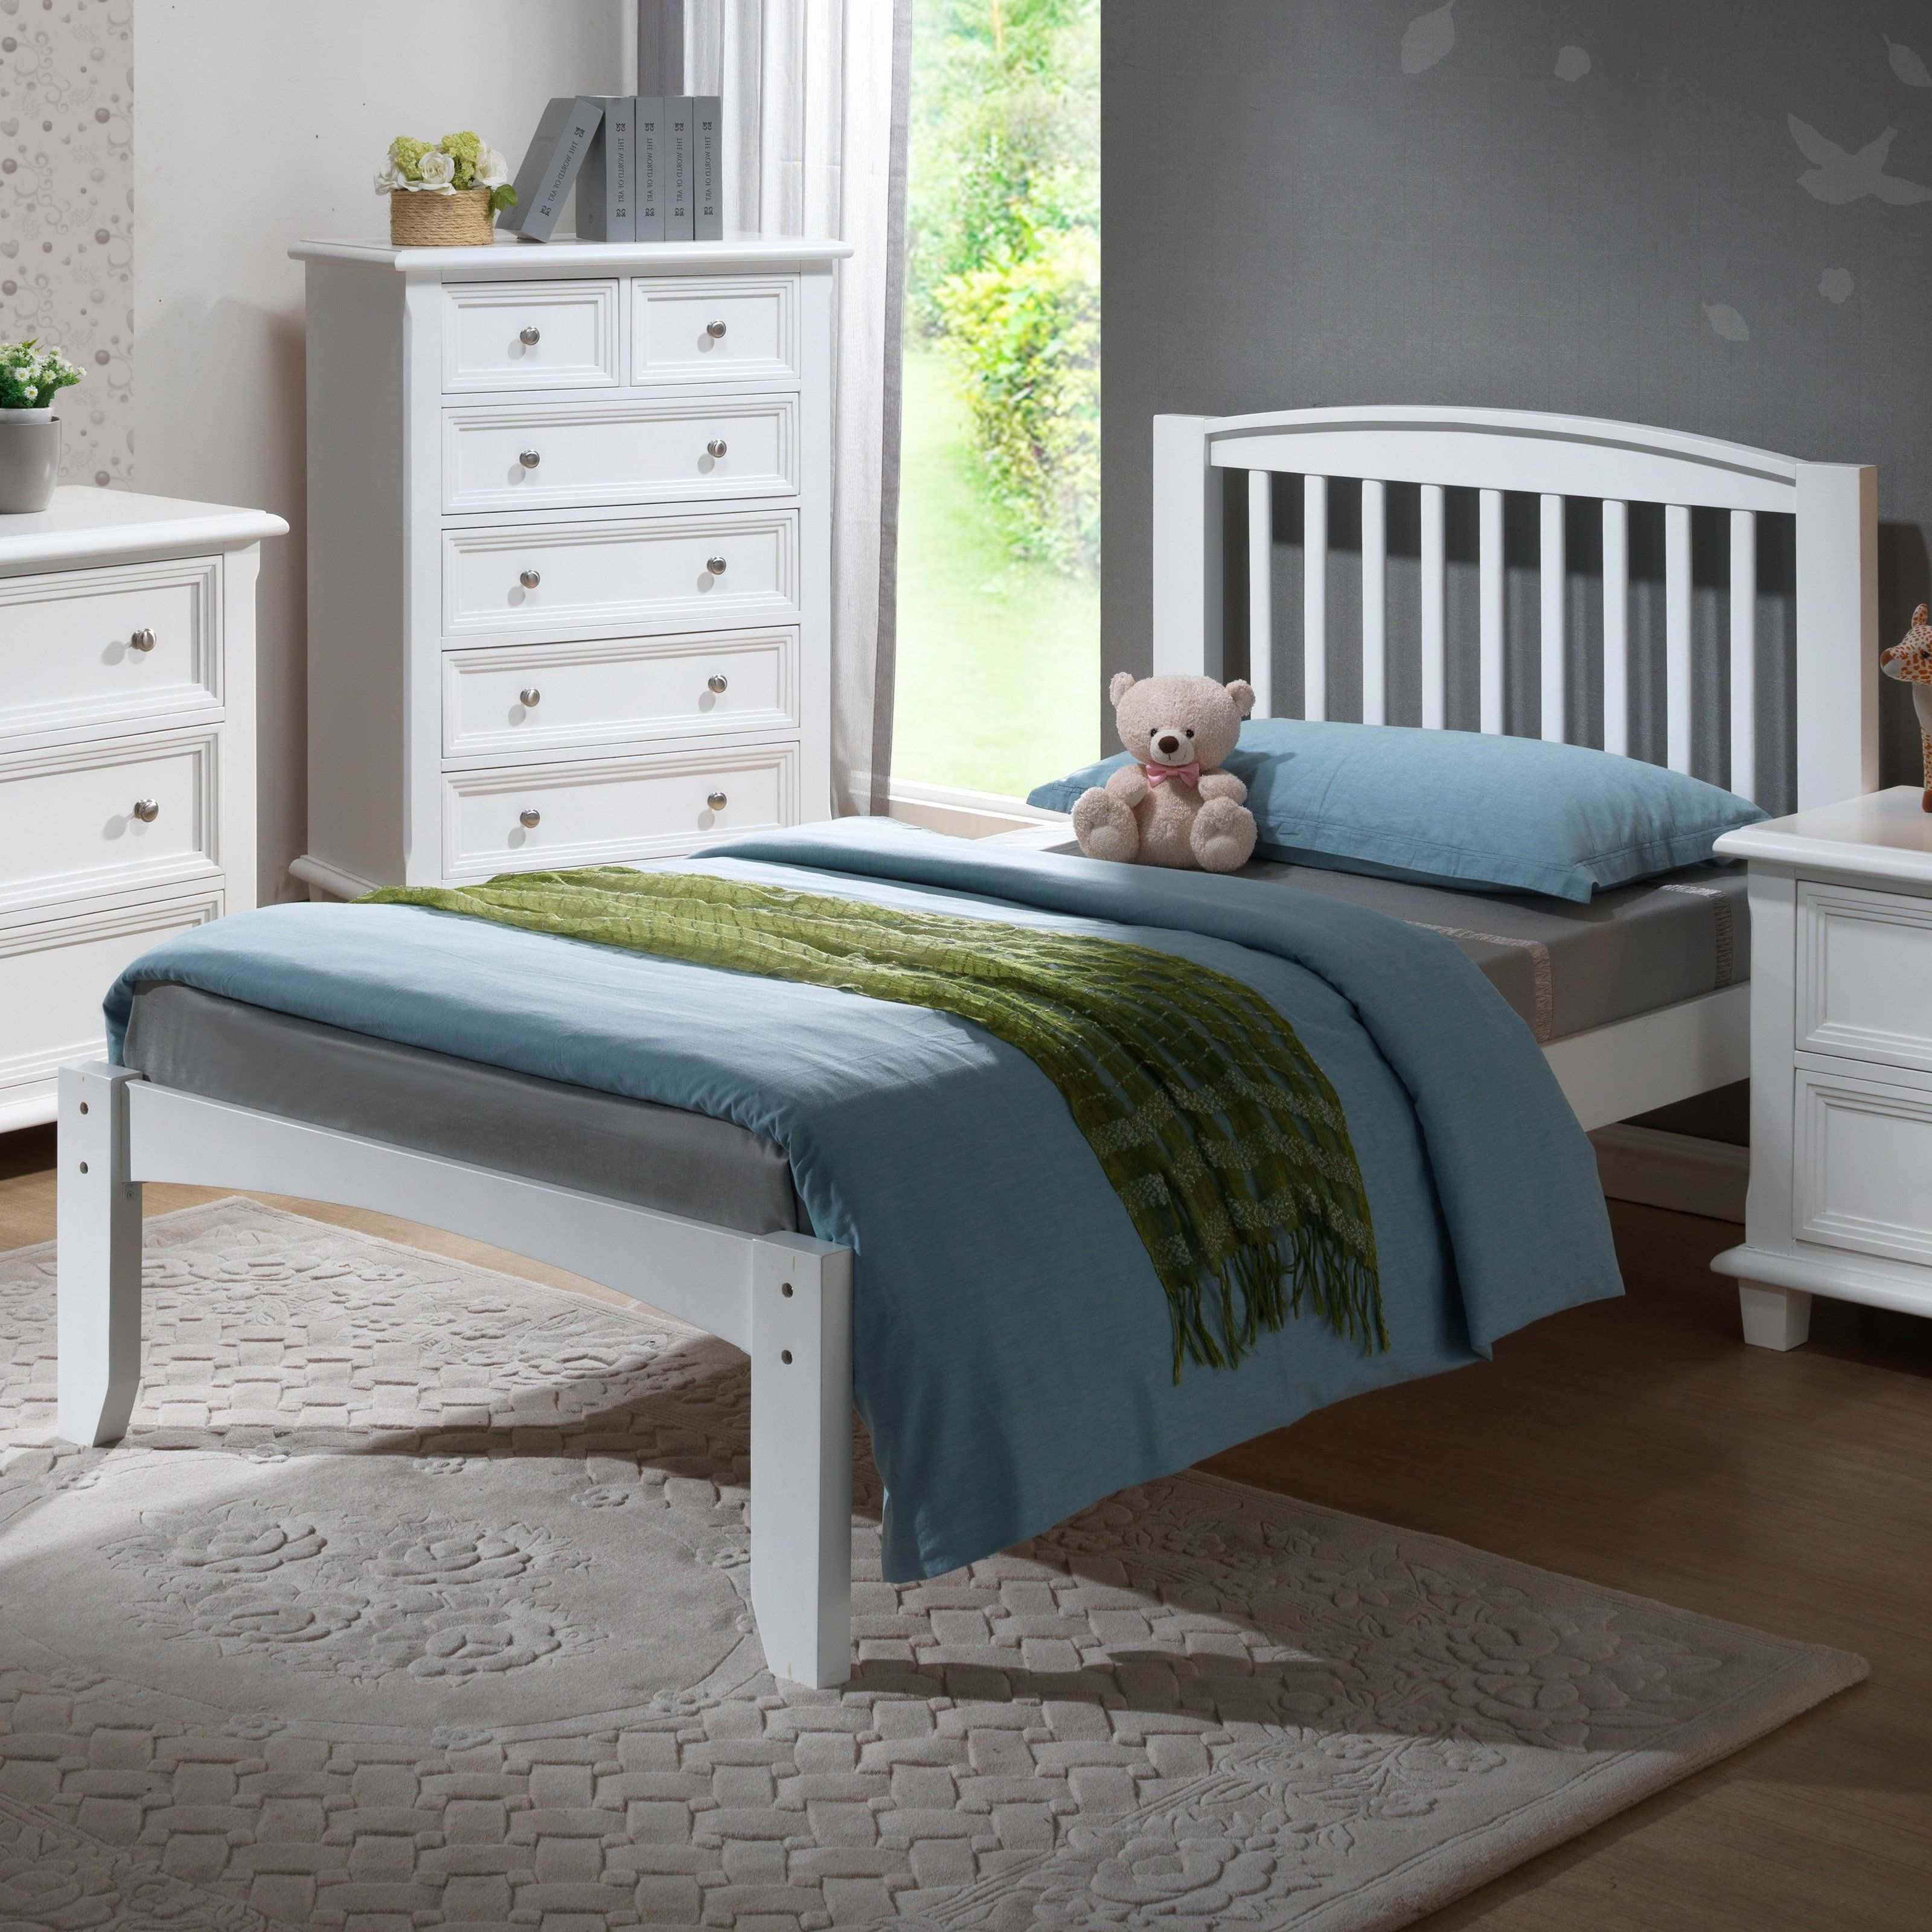 of under boys size bedroom kids within bed uncategorized for bunk sets fantastic twin imposing on king full beds with extraordinary